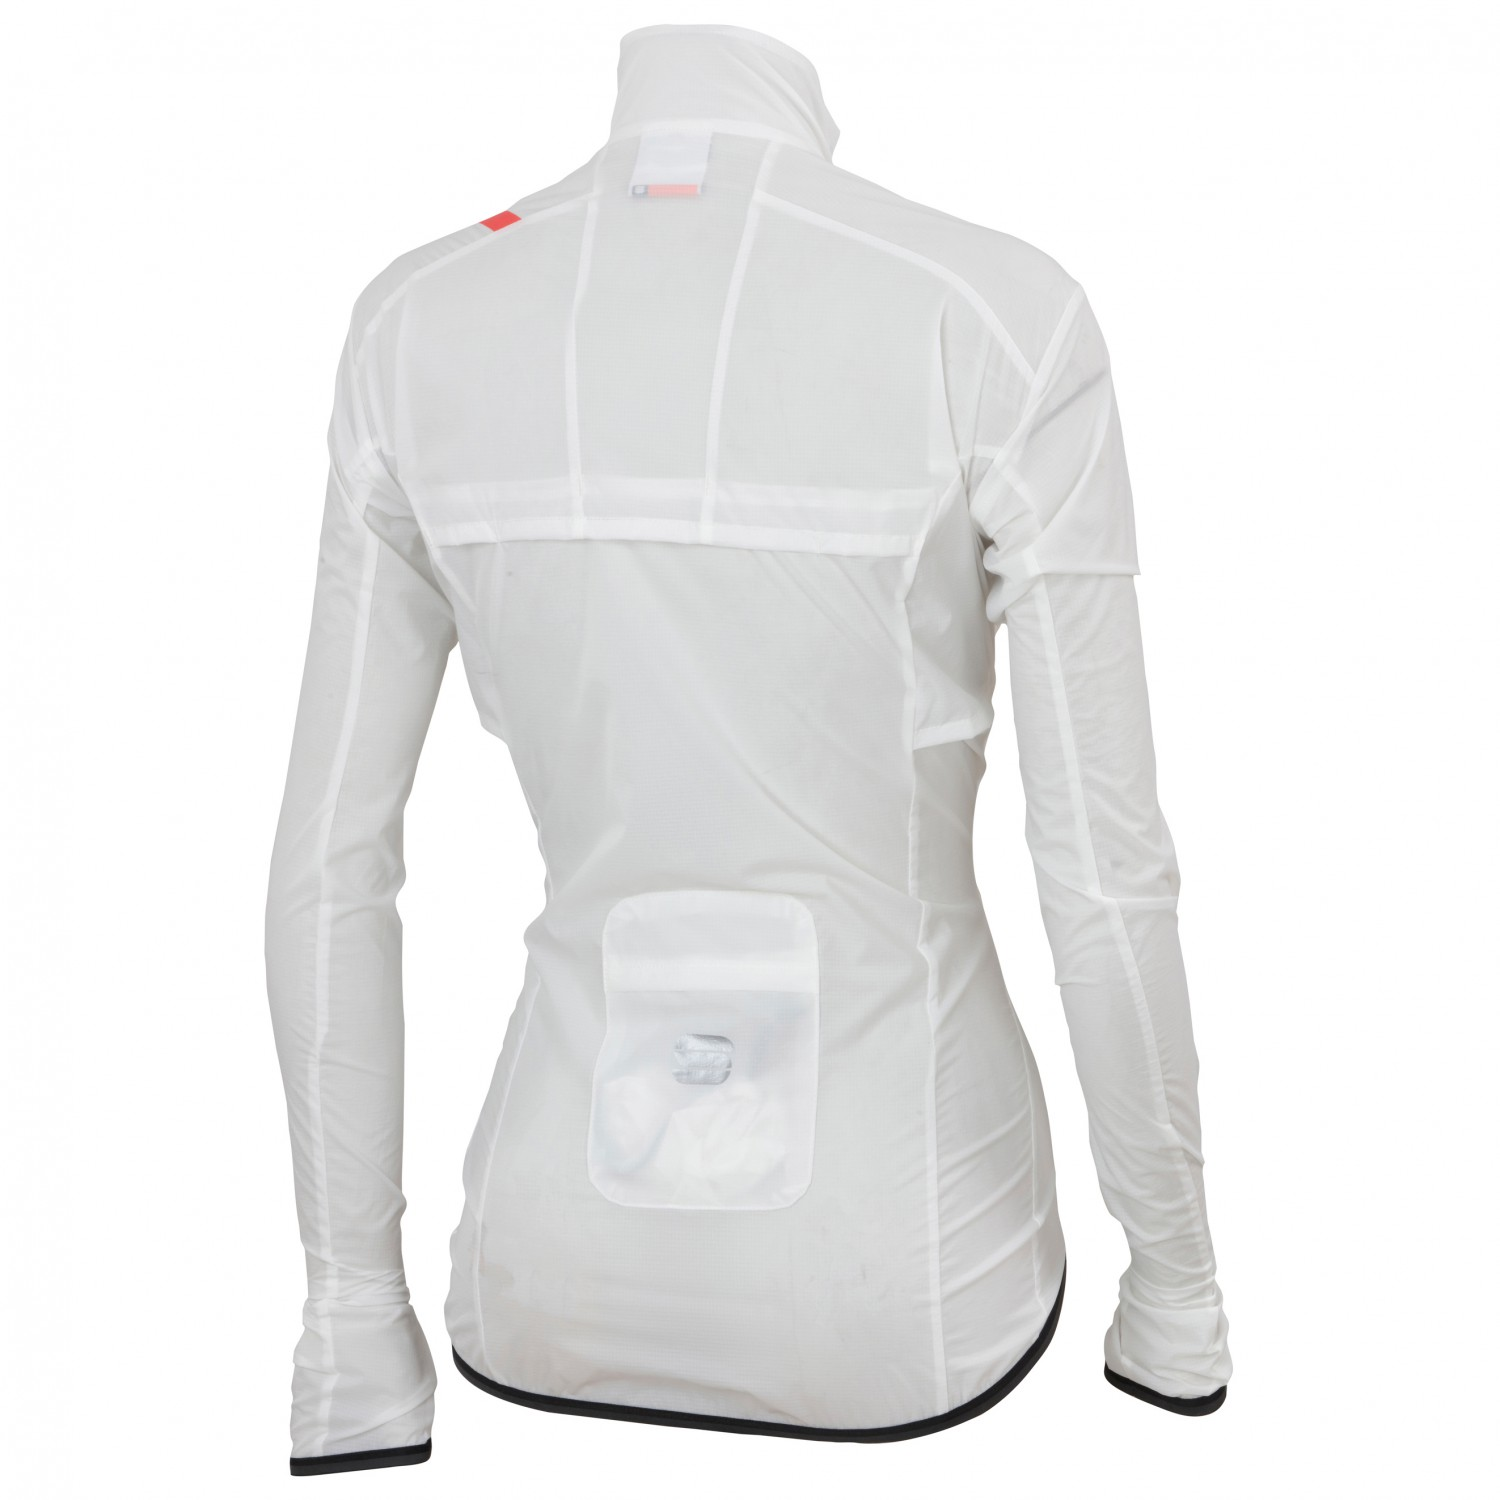 c238cd78 Sportful Hot Pack 6 Jacket - Sykkeljakker Dame kjøp online ...